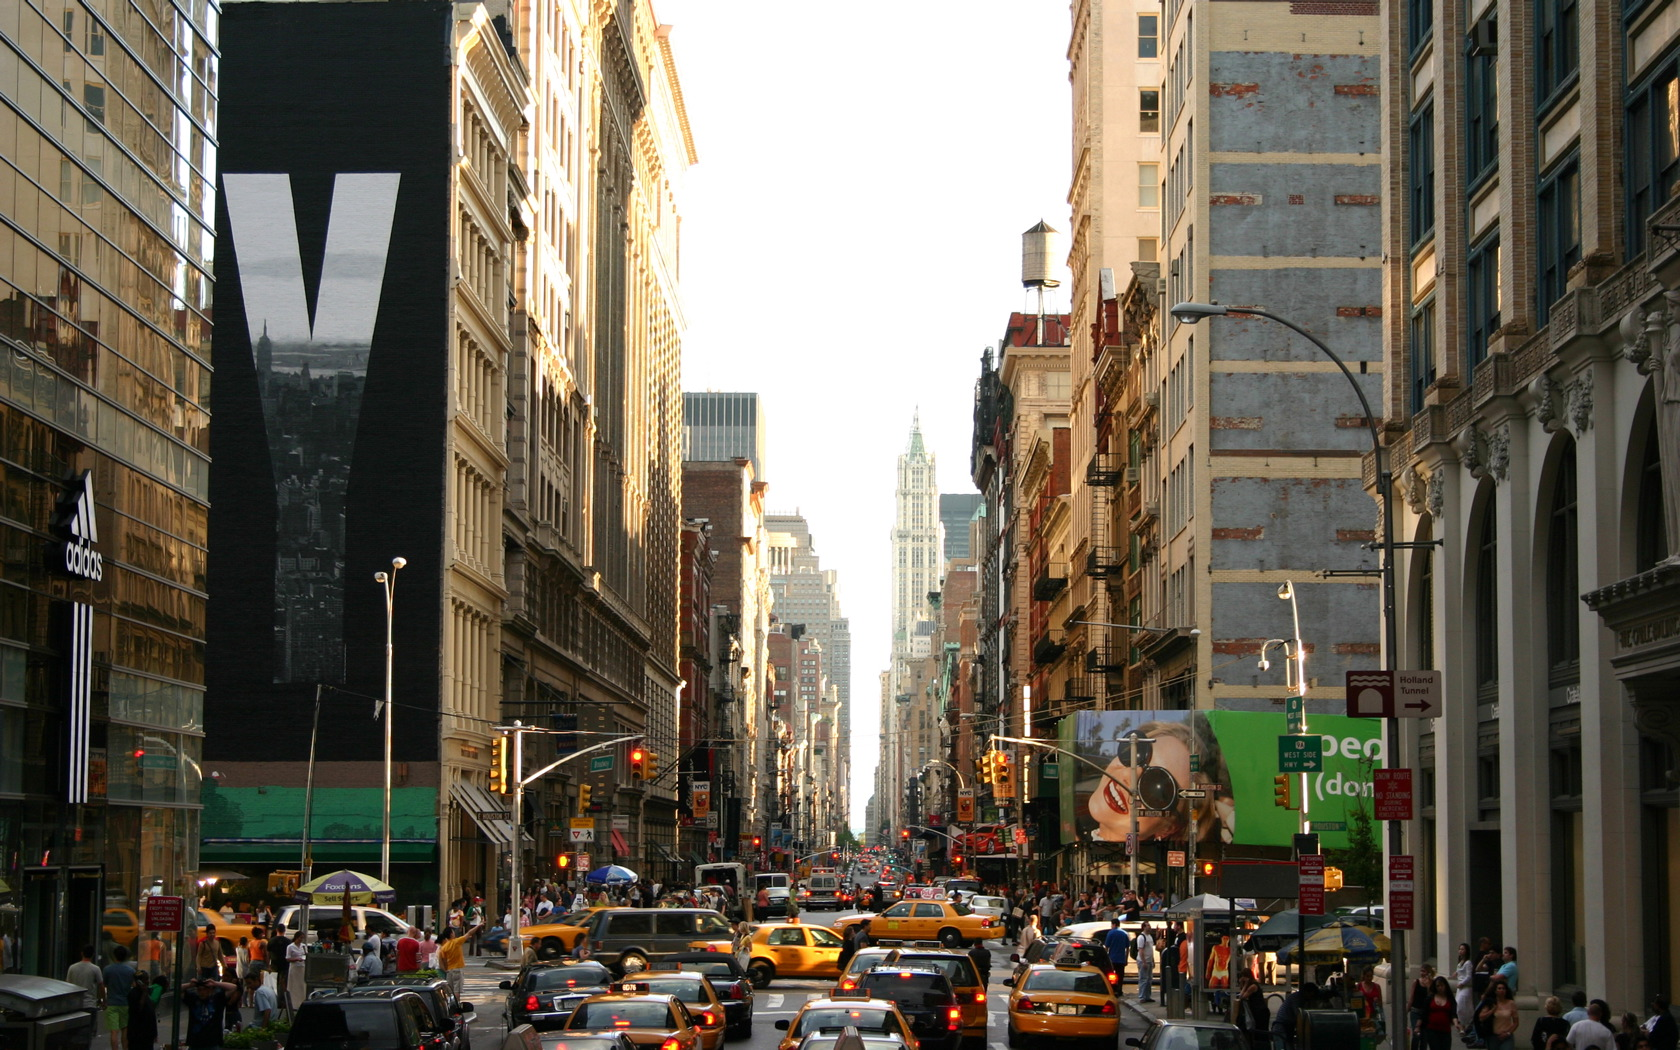 Hustle and Bustle of New York City